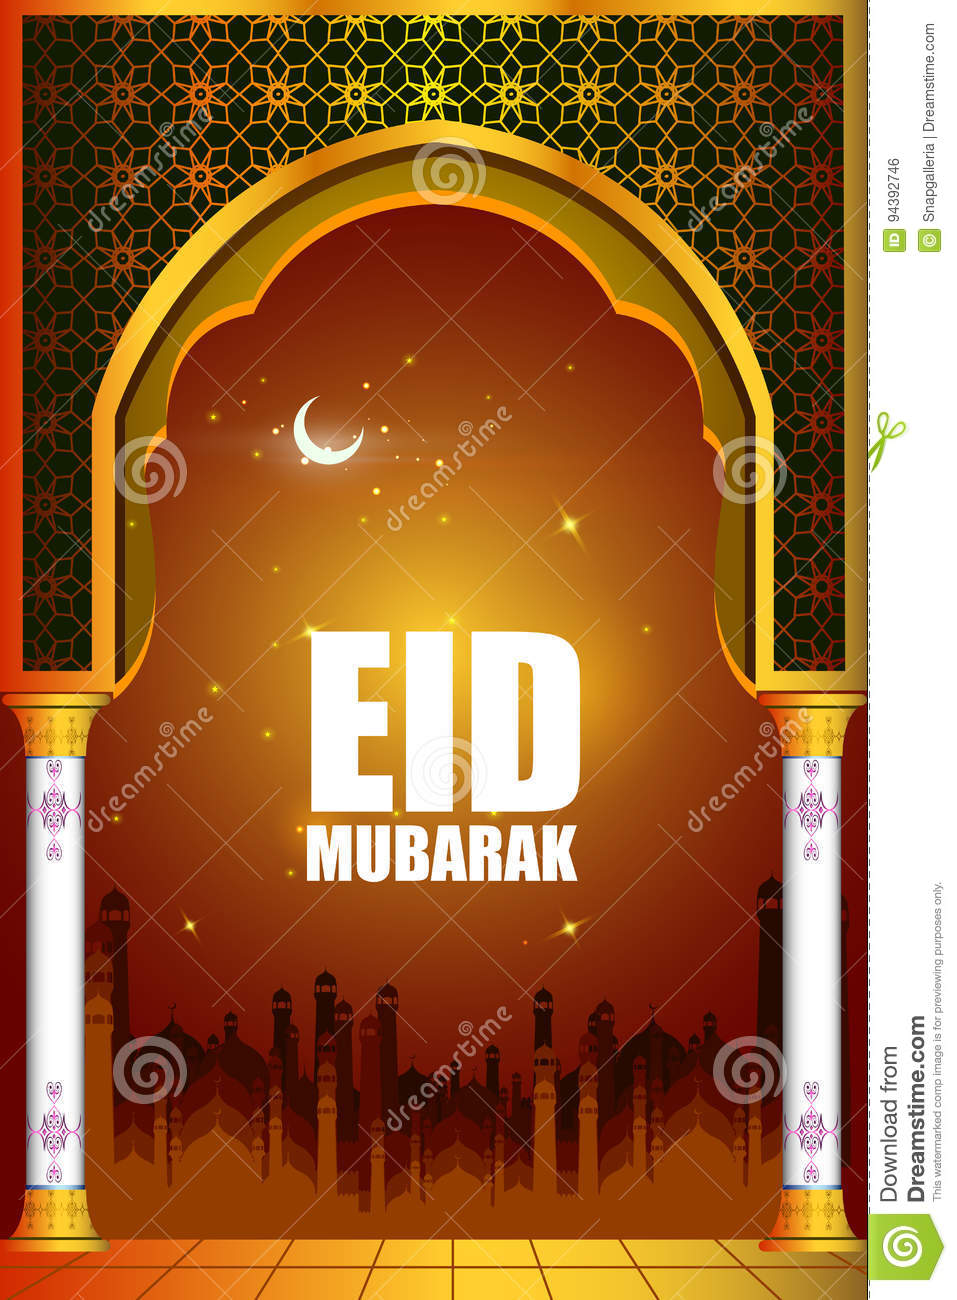 Photo editor services eid mubarak